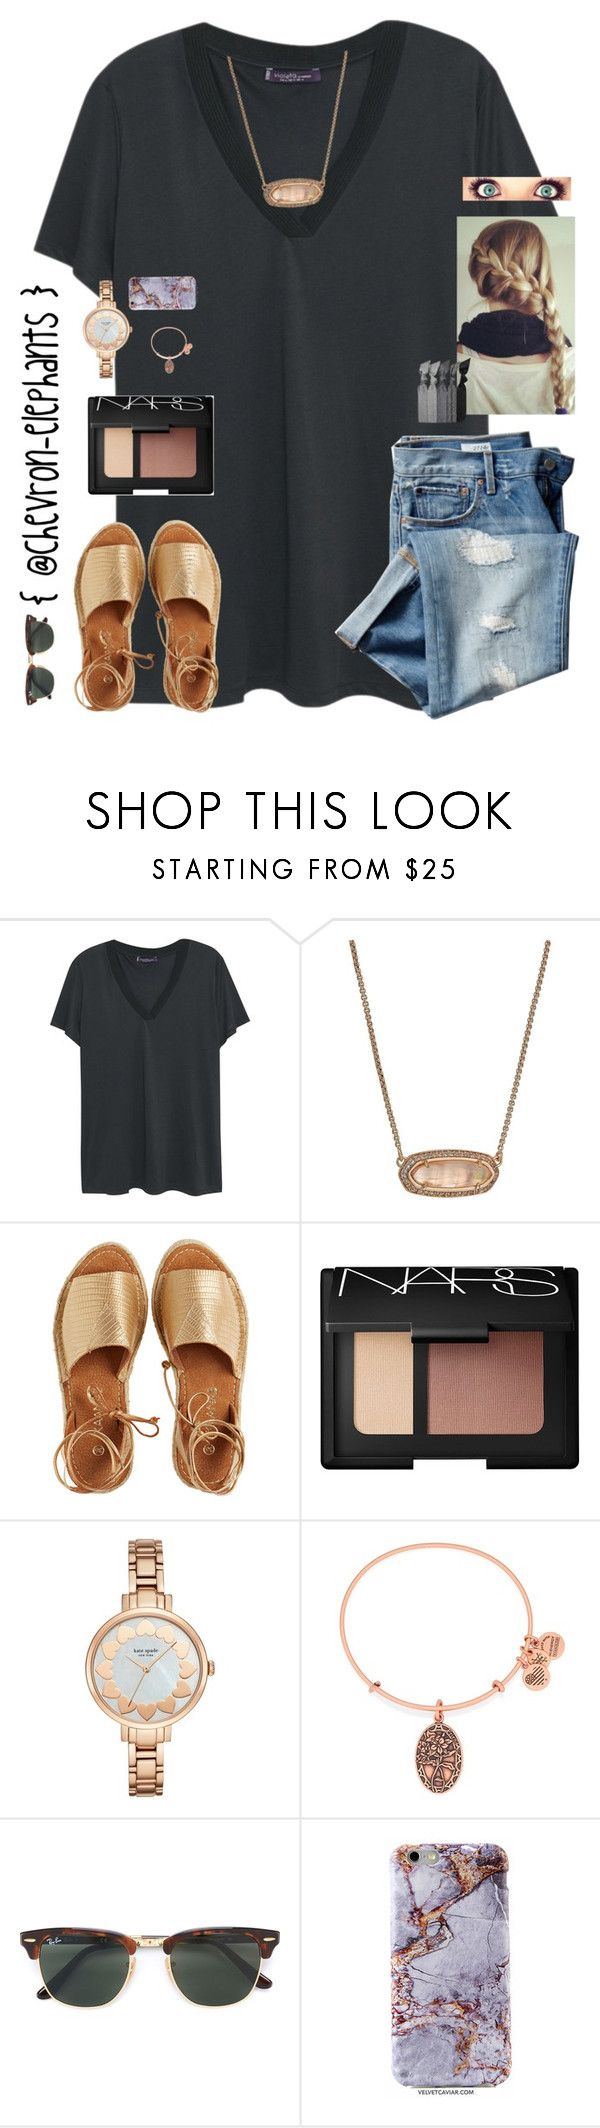 """On da way to CAROWINNNDDDSSSS!!!"" by chevron-elephants ❤ liked on Polyvore featuring Violeta by Mango, Kendra Scott, Kaanas, NARS Cosmetics, Kate Spade, Alex and Ani, Gap, Ray-Ban and Emi-Jay"